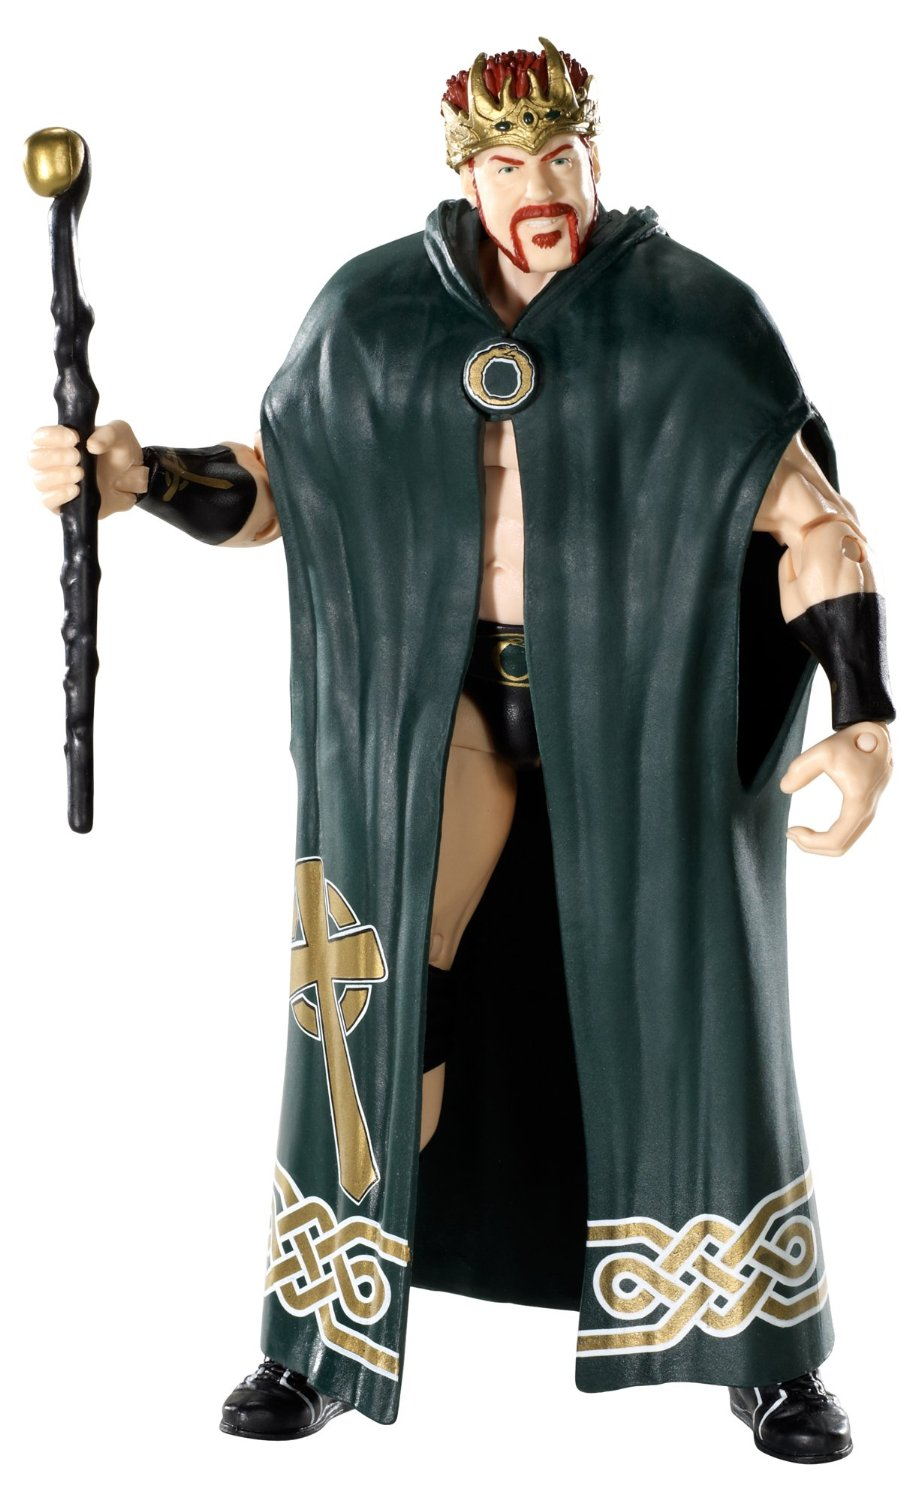 Sheamus King Of The Ring Figure